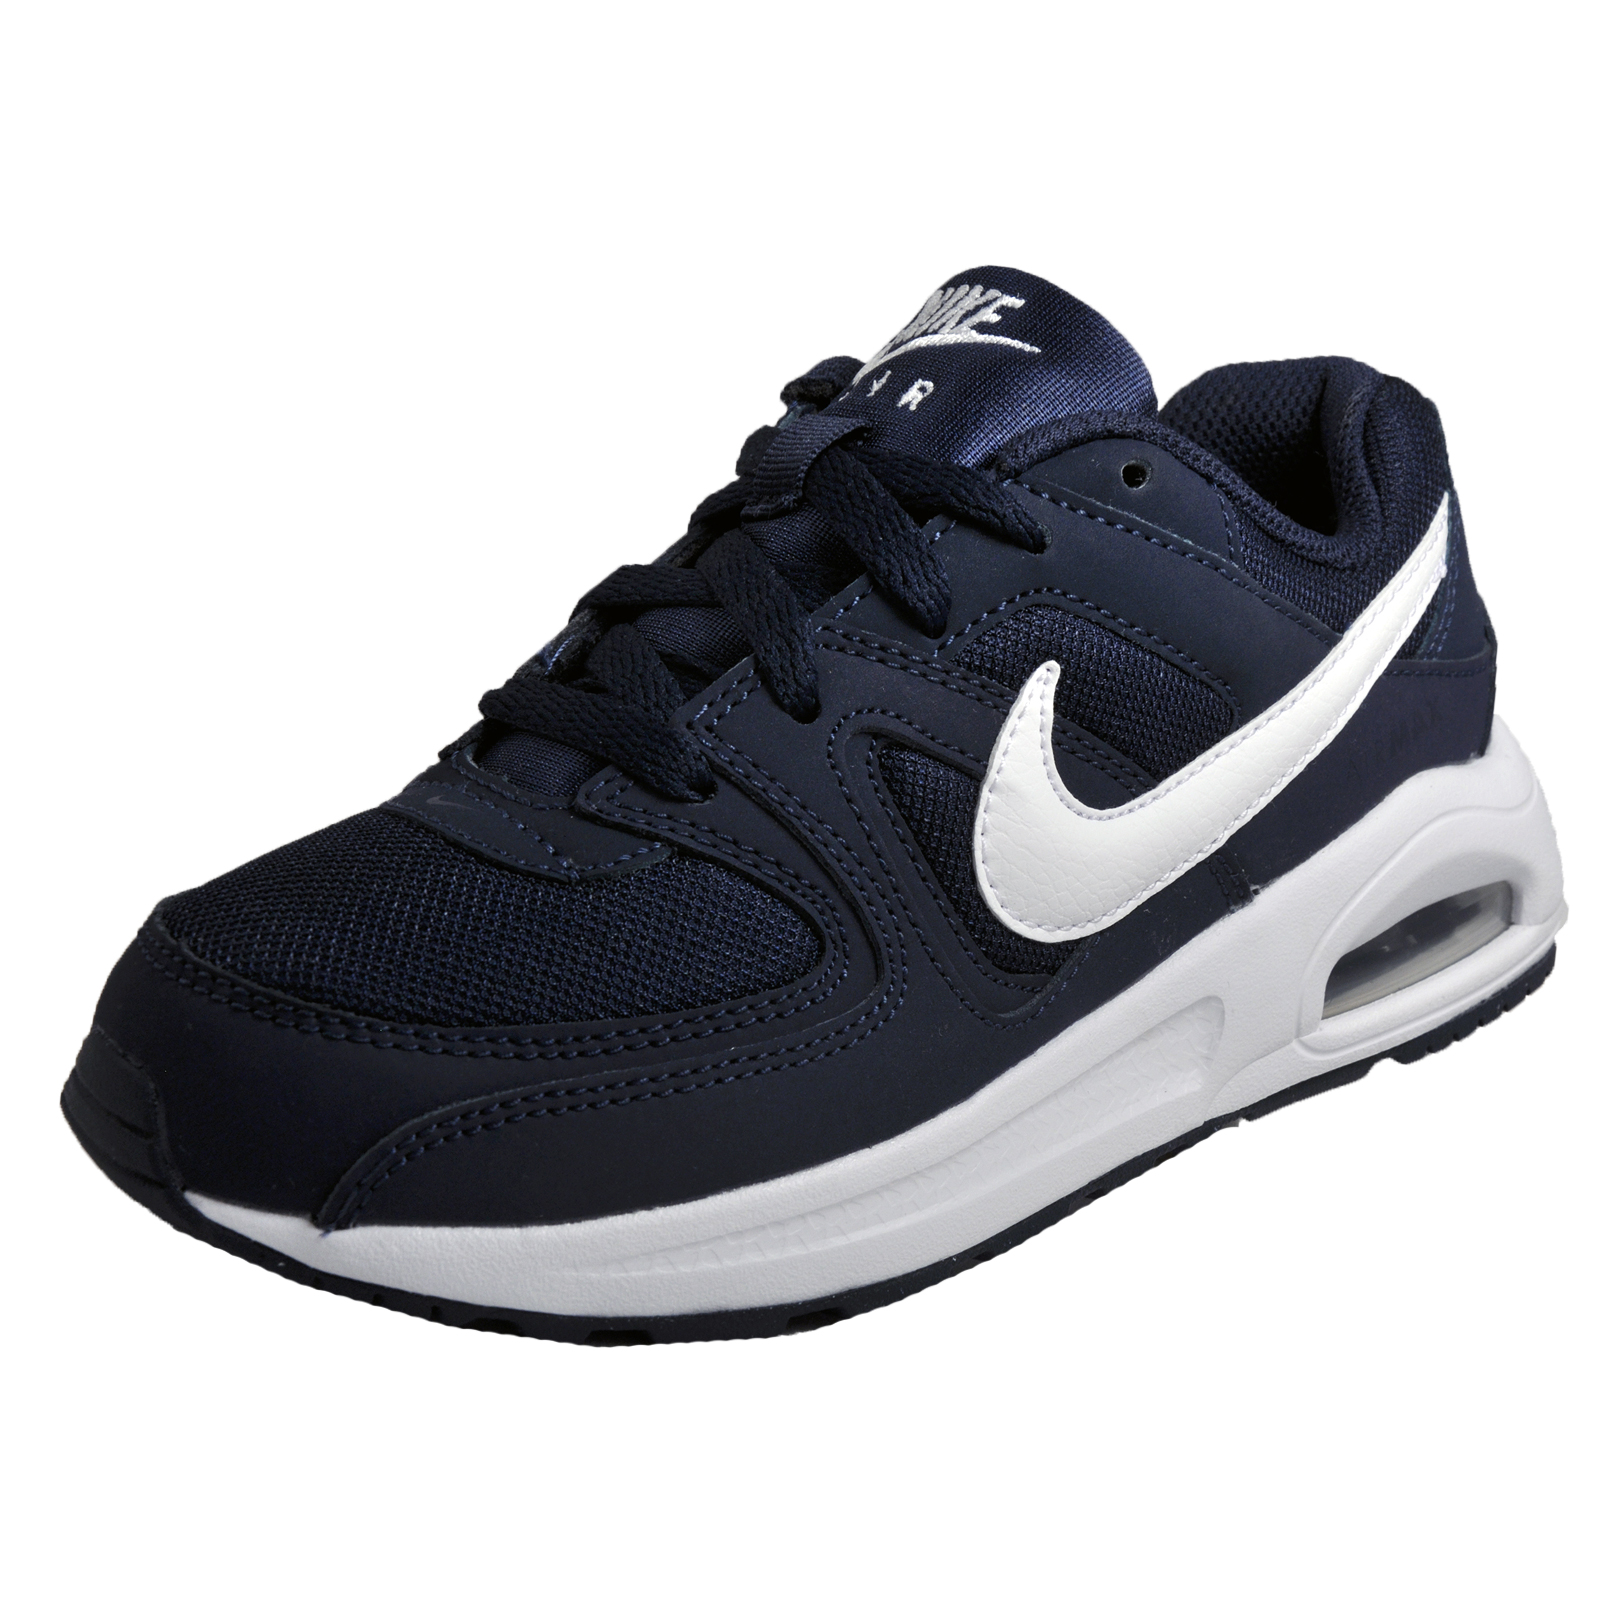 quality design 89f18 36674 Details about Nike Air Max Command Flex Junior Kids Classic Casual Retro  Trainers Navy